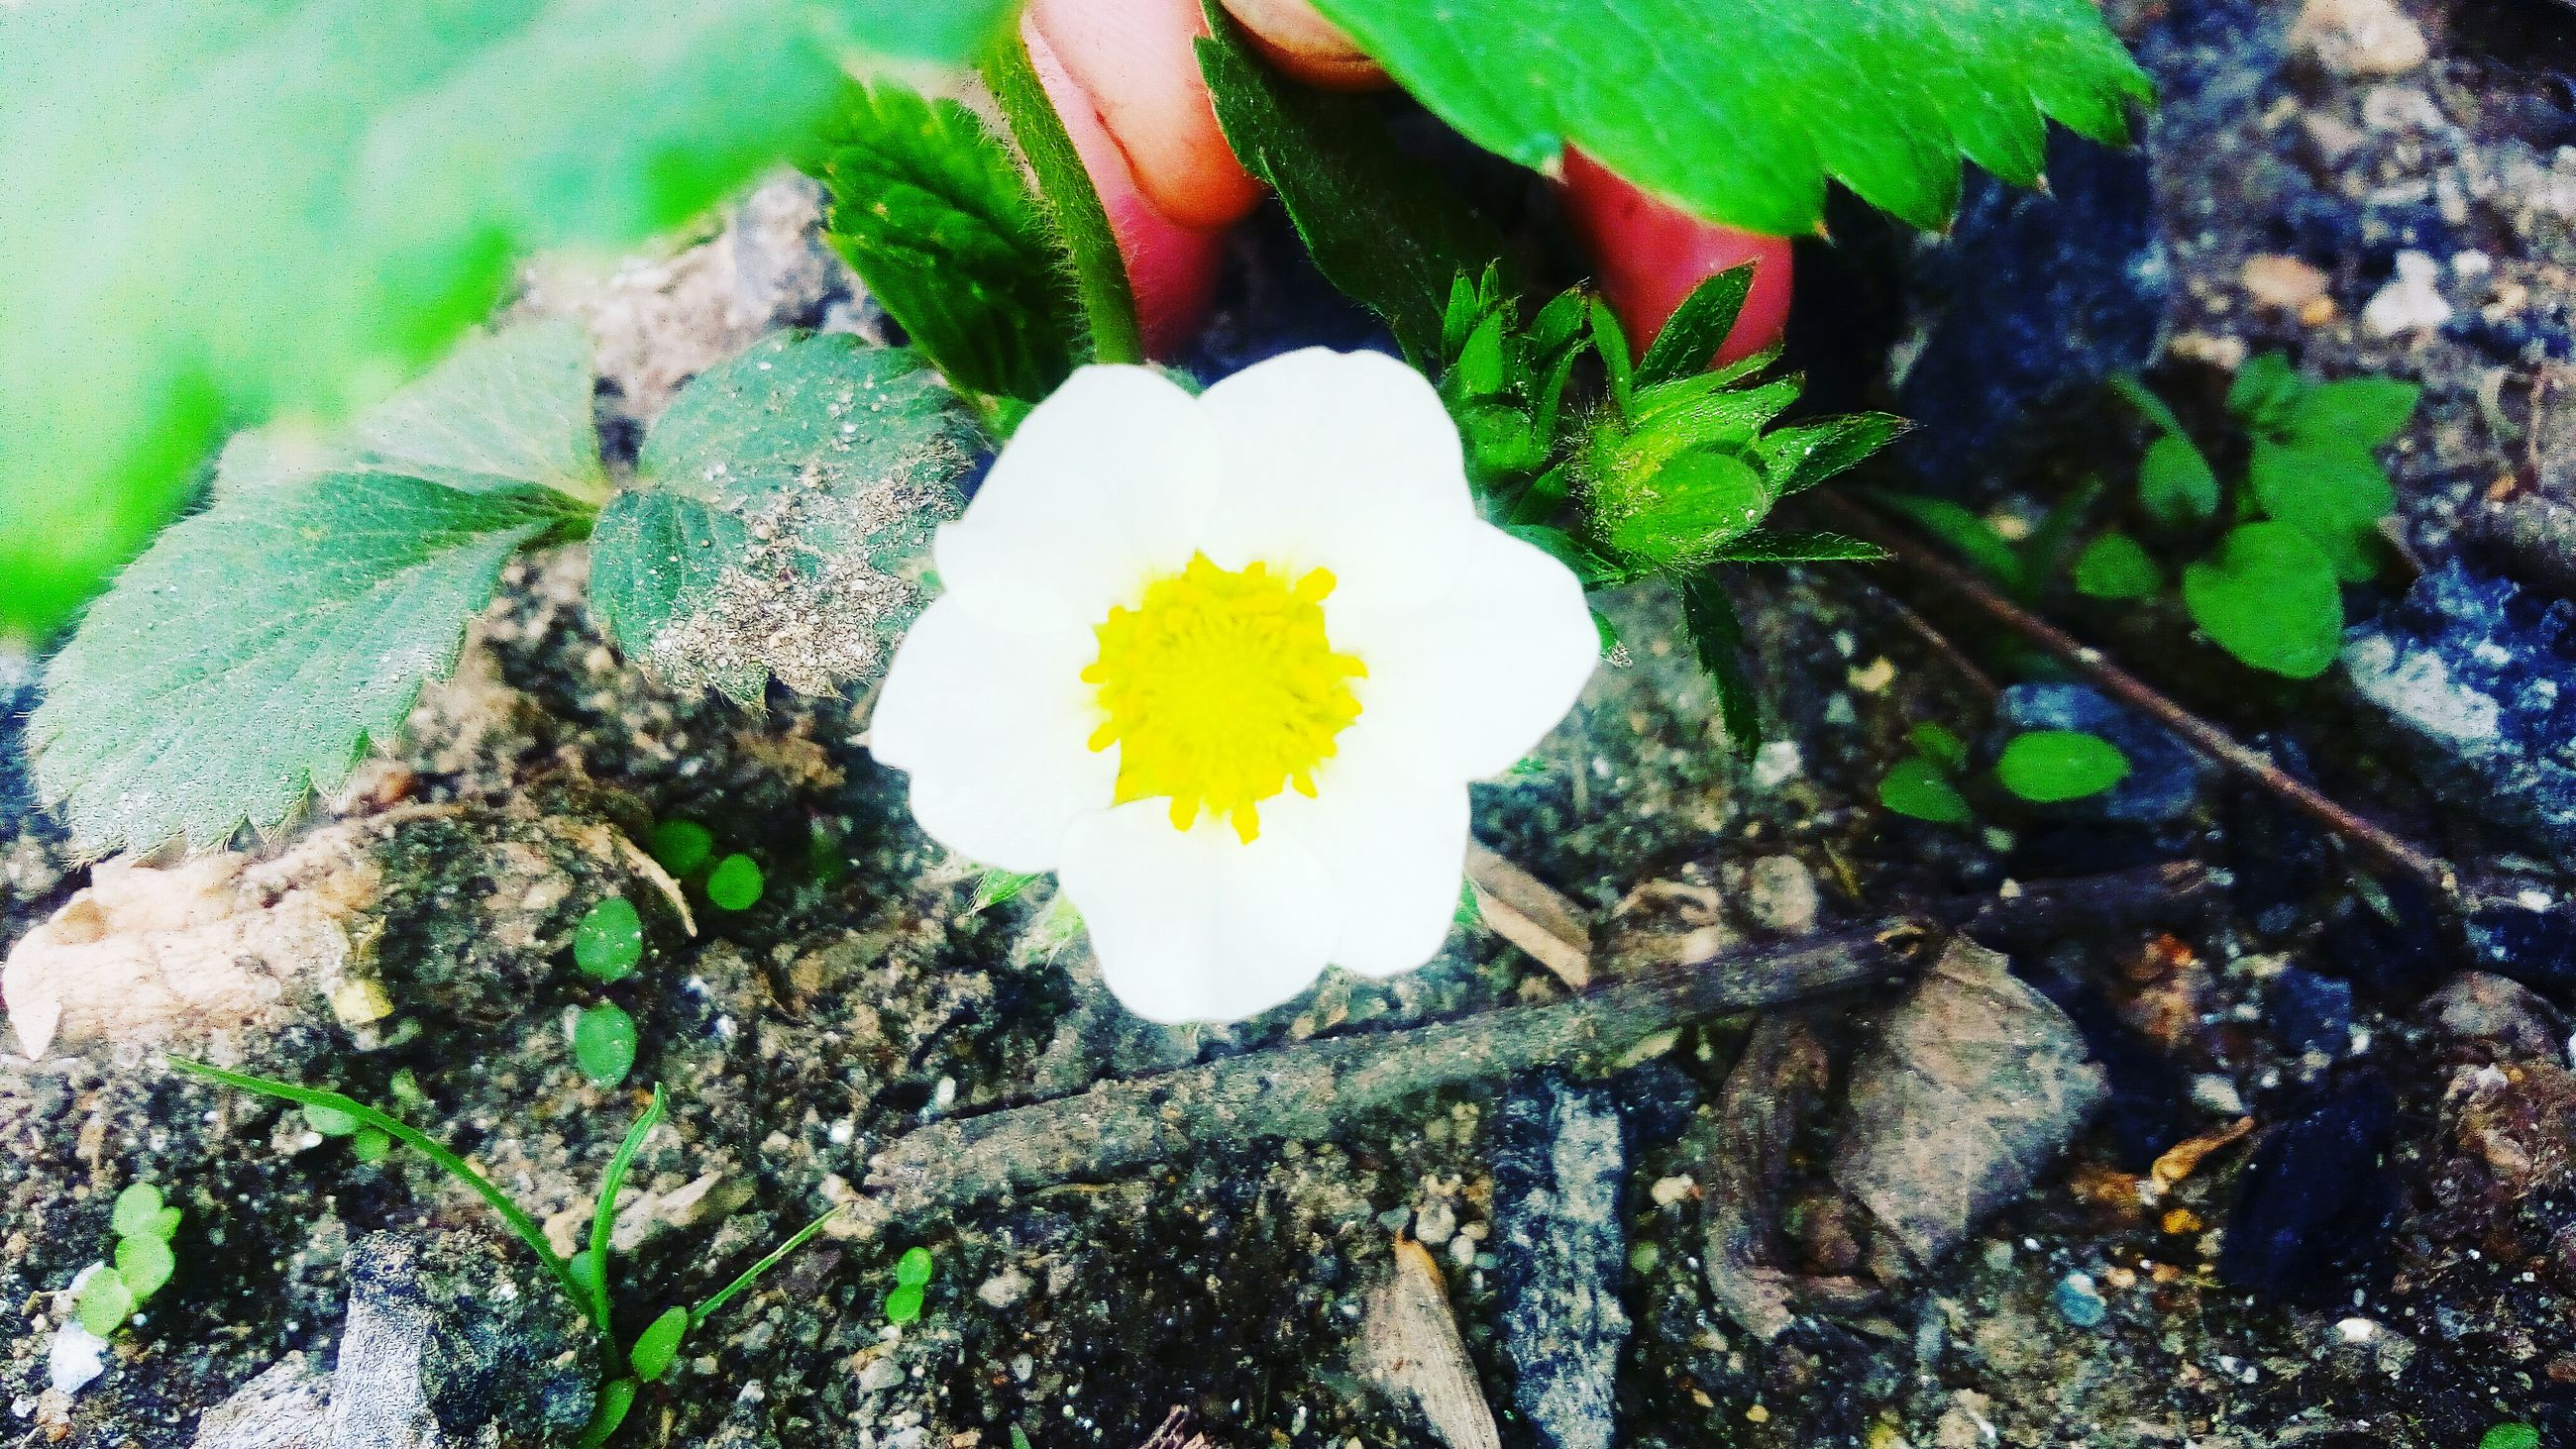 flower, high angle view, leaf, plant, freshness, growth, nature, petal, close-up, water, fragility, beauty in nature, single flower, flower head, day, no people, outdoors, yellow, directly above, rock - object